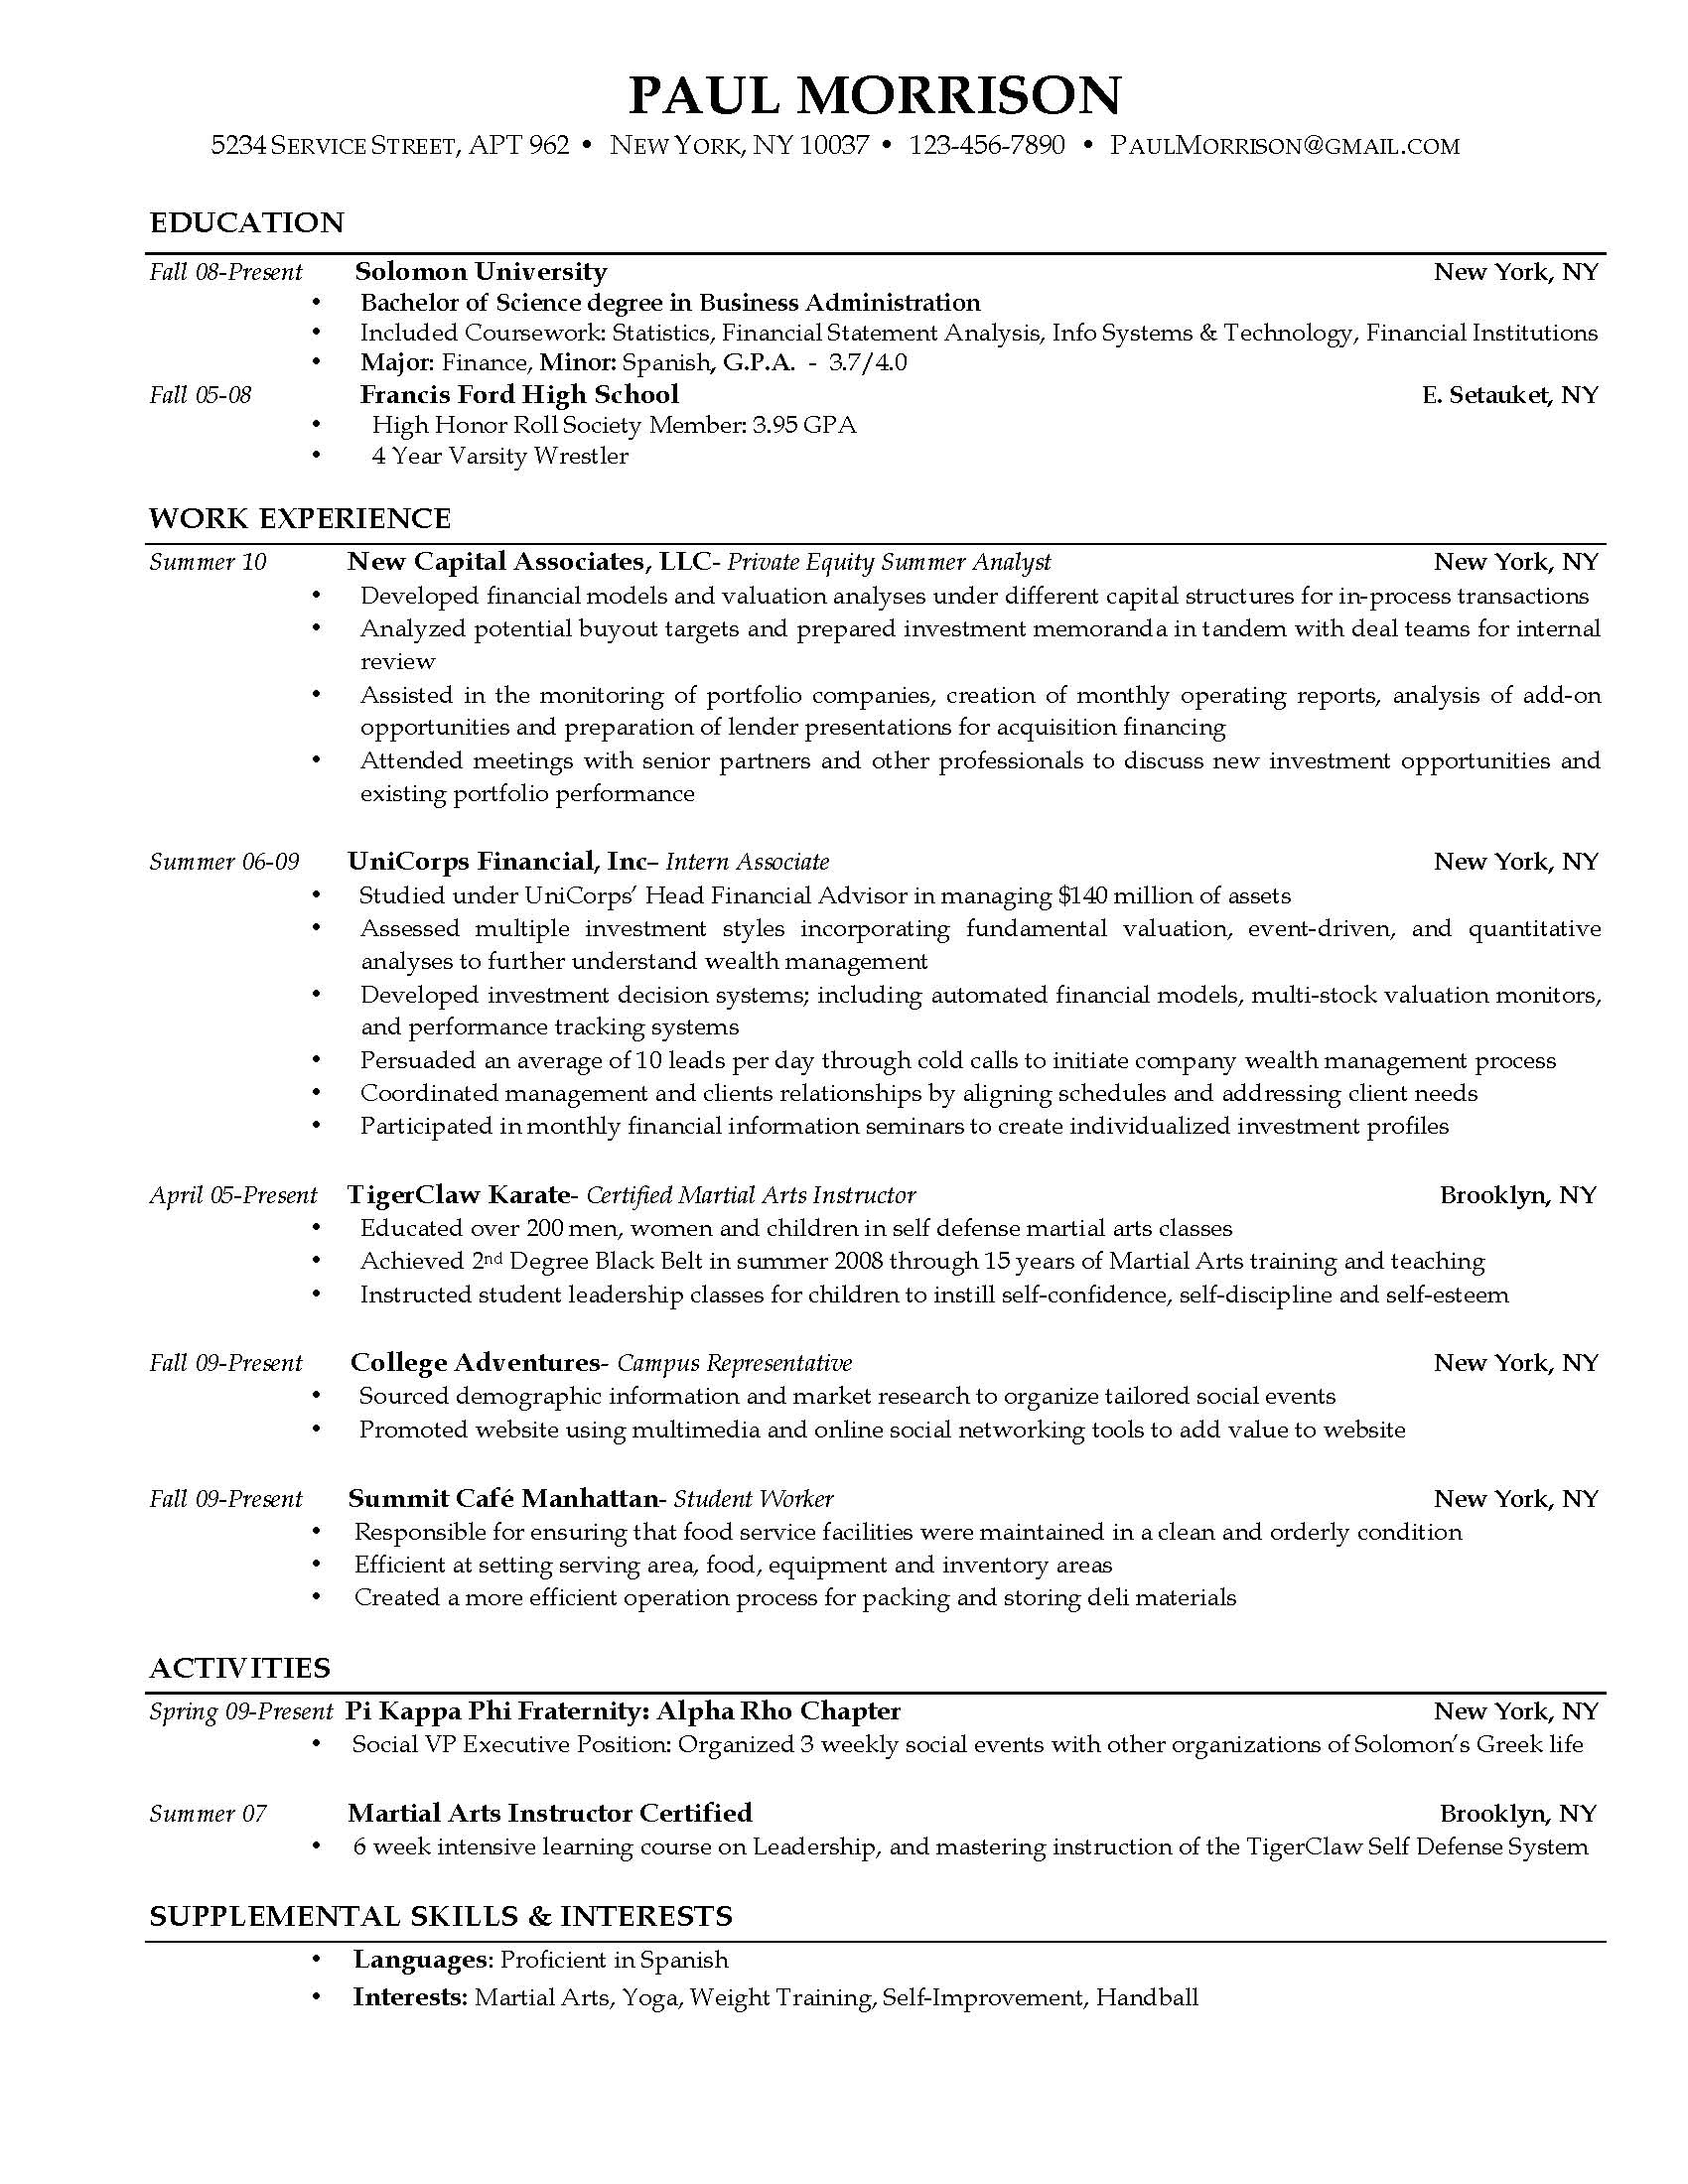 education bottom resume professional resume cover letter sample education bottom resume why you shouldnt have education at the top of your here is an